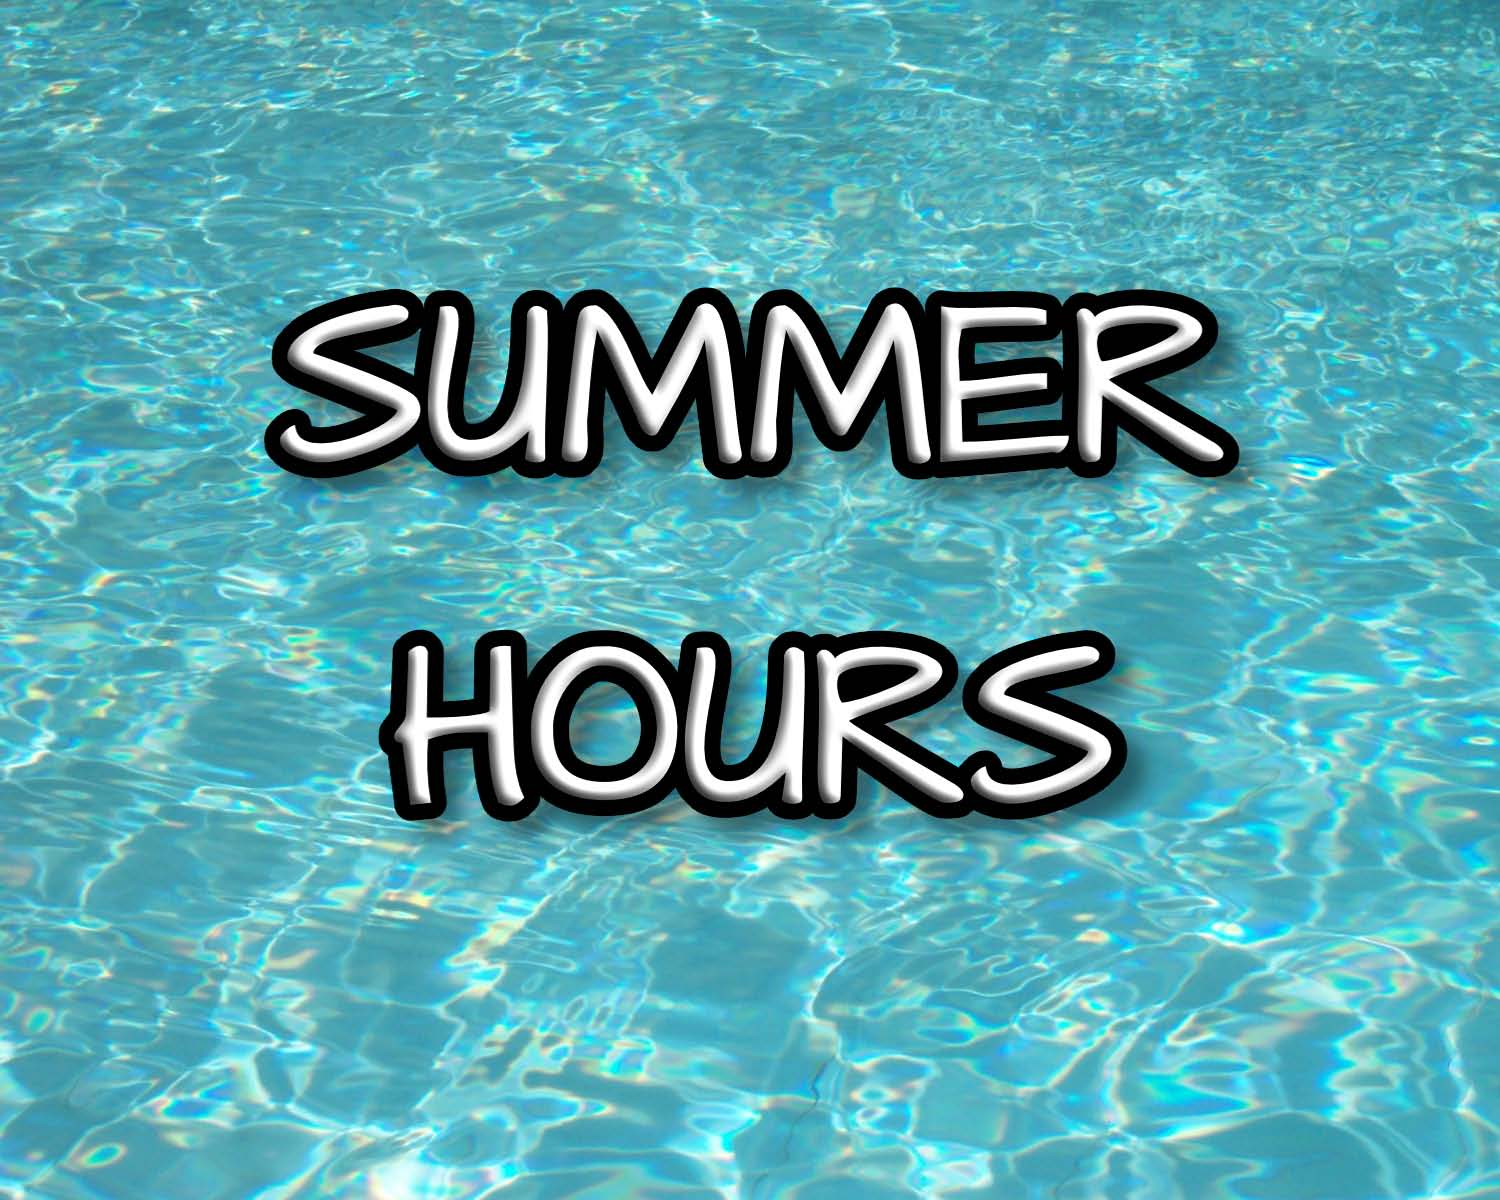 Hours Of Operation Clip Art : Summer hours pictures to pin on pinterest thepinsta